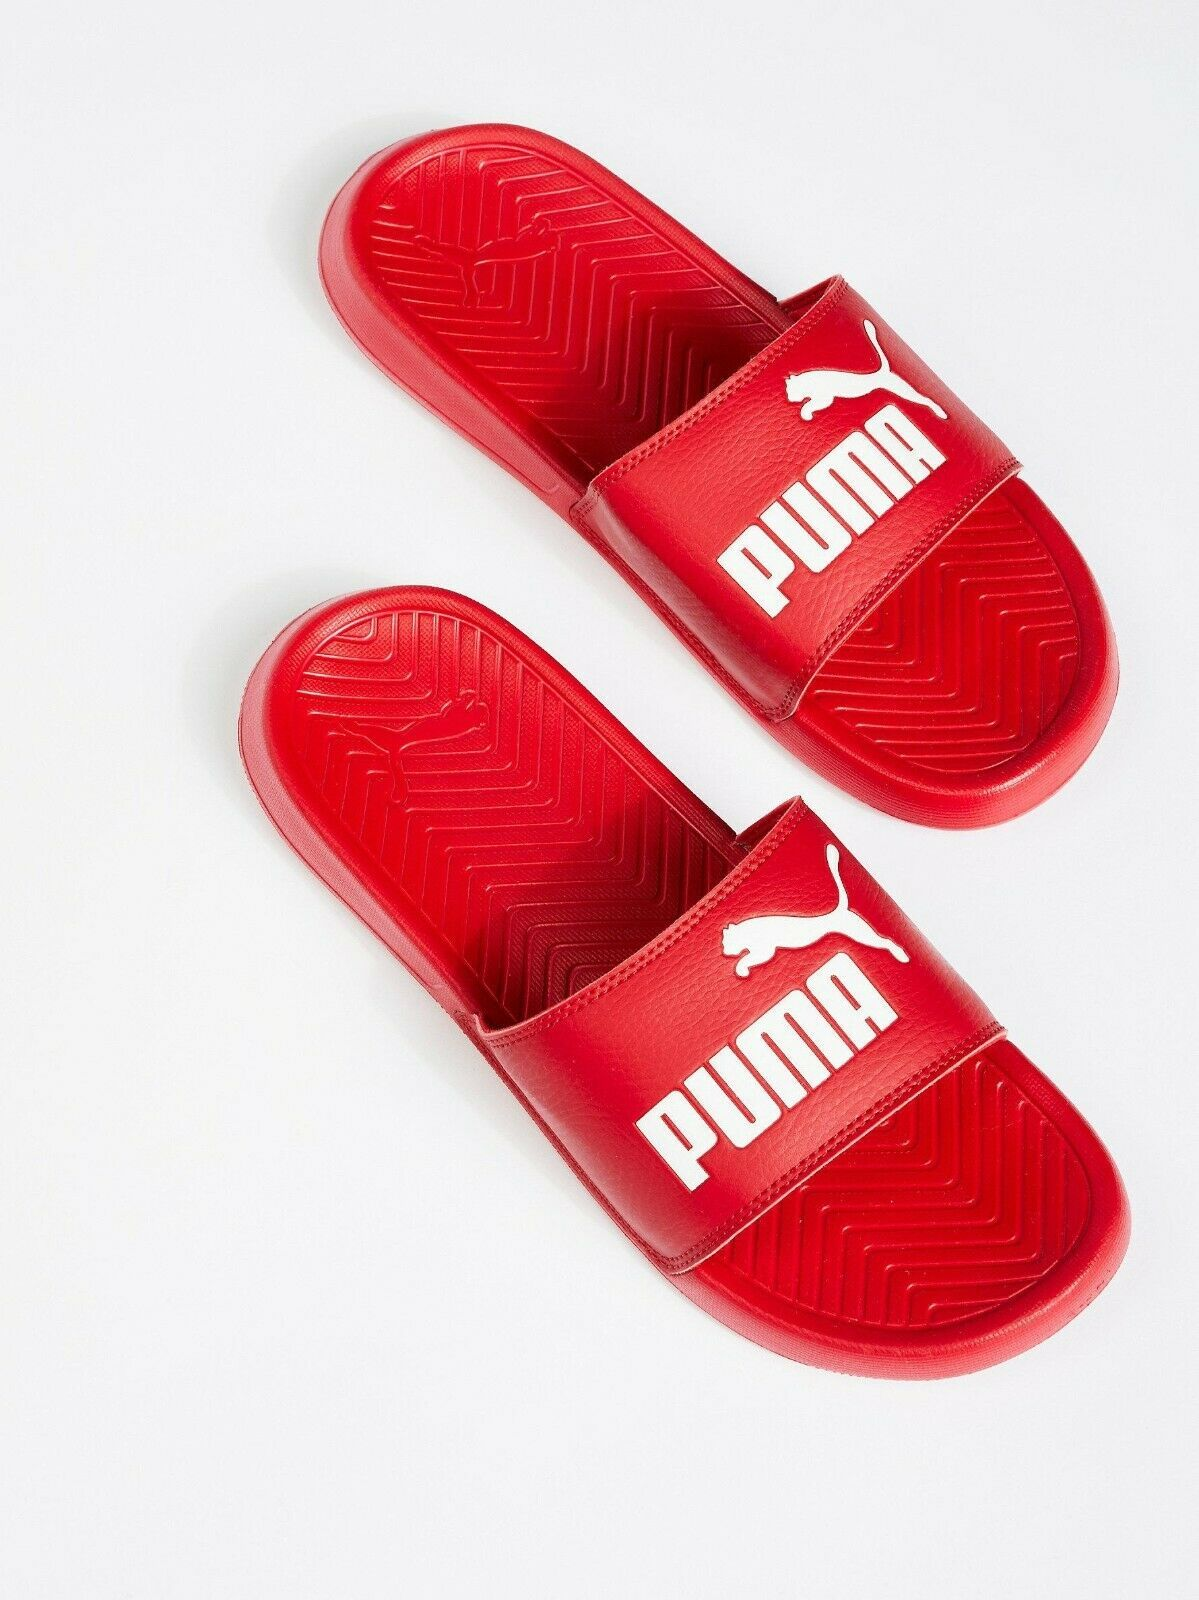 Primary image for WOMEN'S PUMA POPCAT HIBISCUS-PUMA WHITE SLIDE SANDAL Size US 10.5 FREE SHIPPING